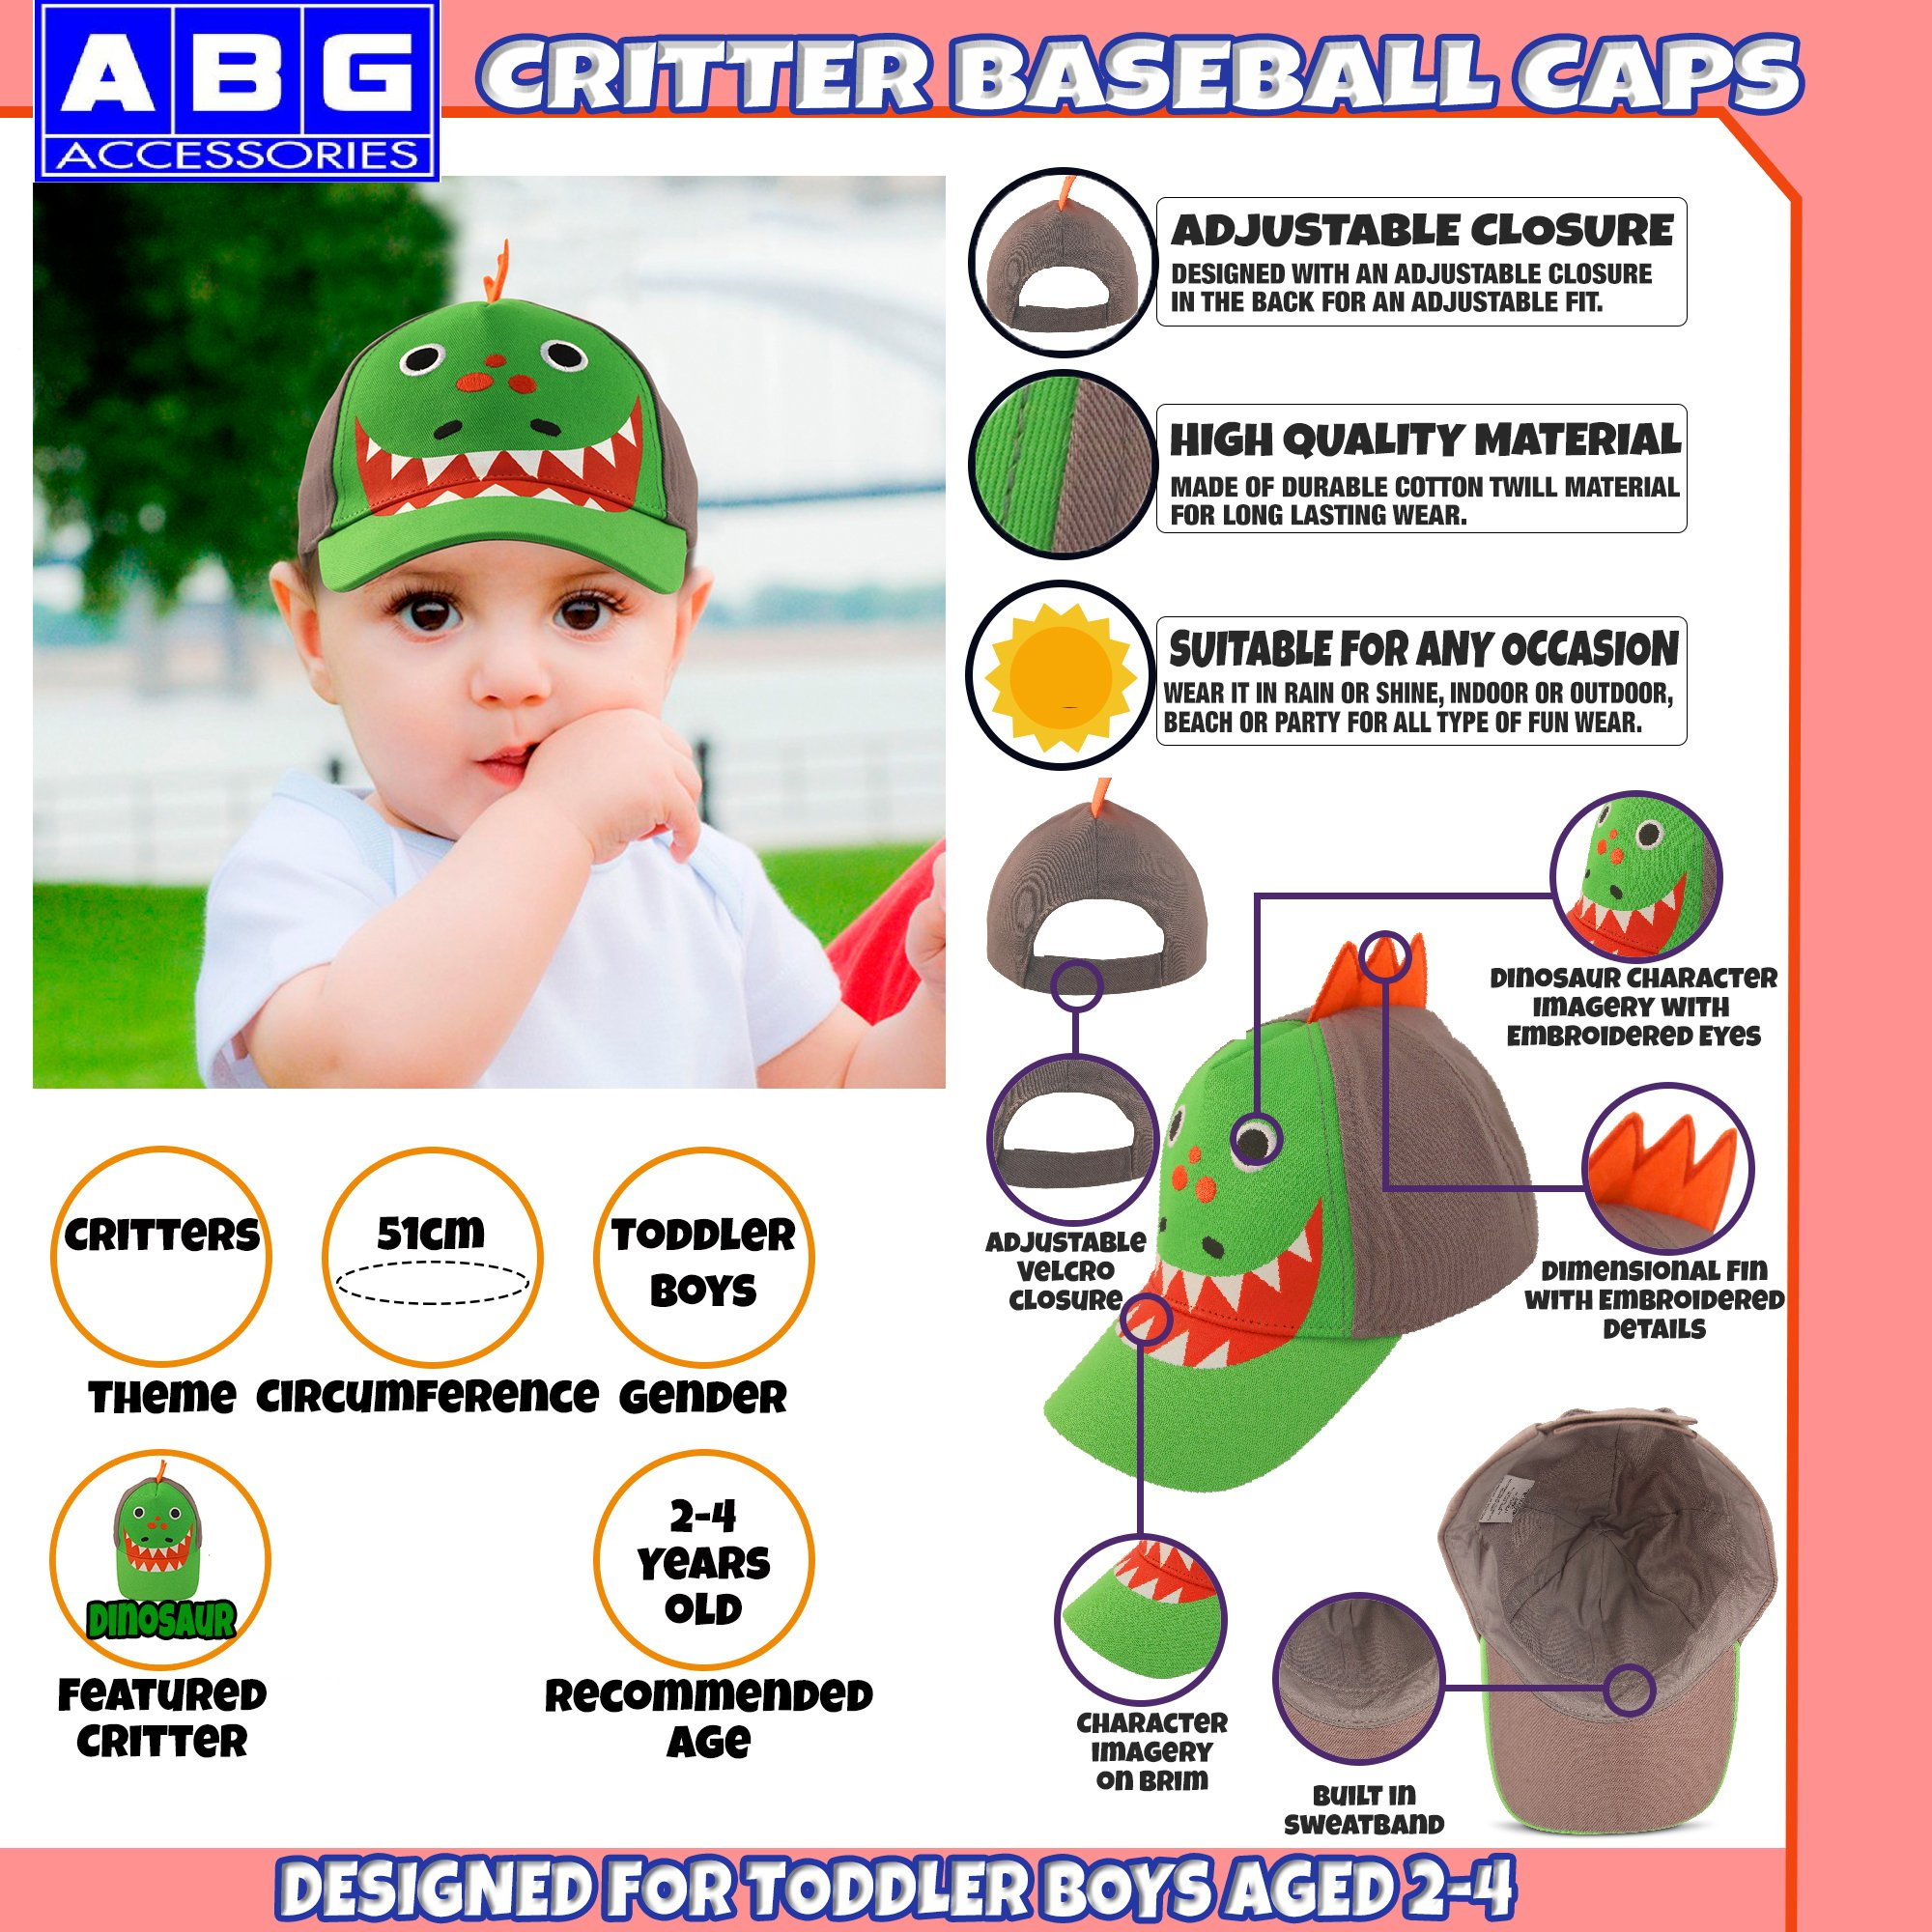 ABG Accessories Toddler Boys Cotton Baseball Cap with Assorted Animal Critter Designs, Age 2-4 (Dinosaur Design – Green/Grey) by ABG Accessories (Image #2)